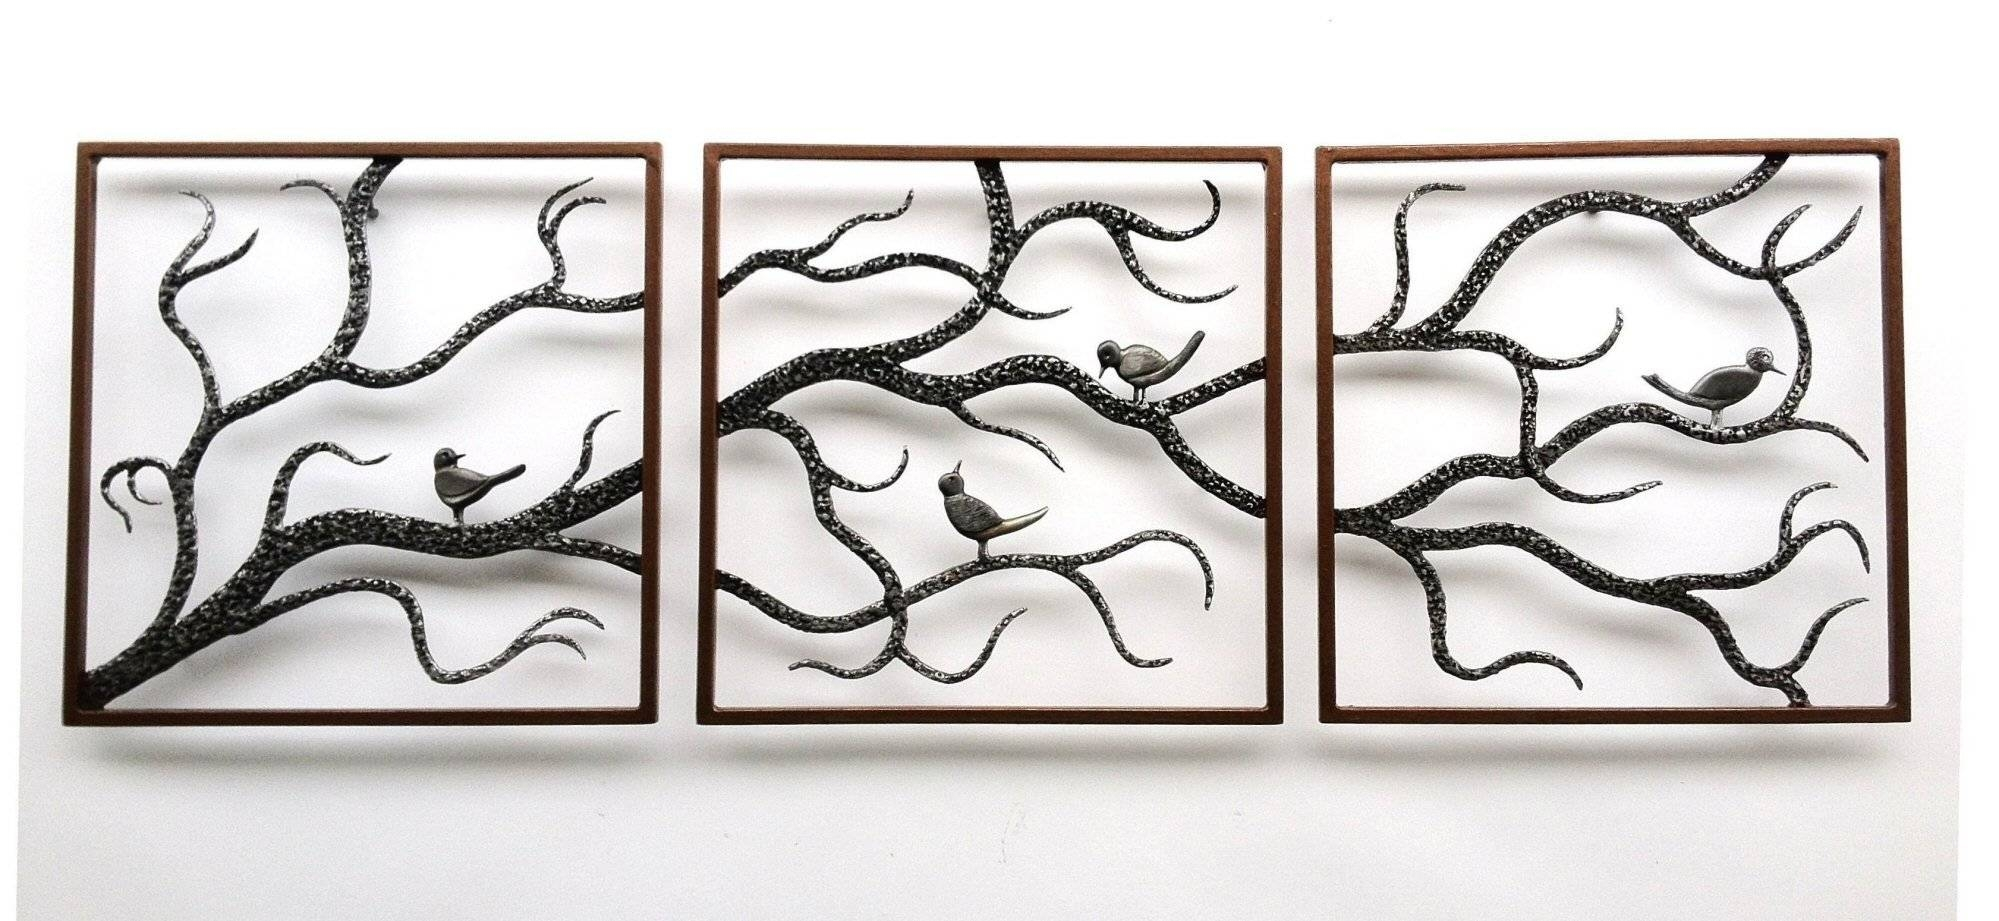 Wall Art Designs: Metal Wall Art Trees Birch Three Framed Cute Pertaining To Latest Square Metal Wall Art (View 8 of 20)